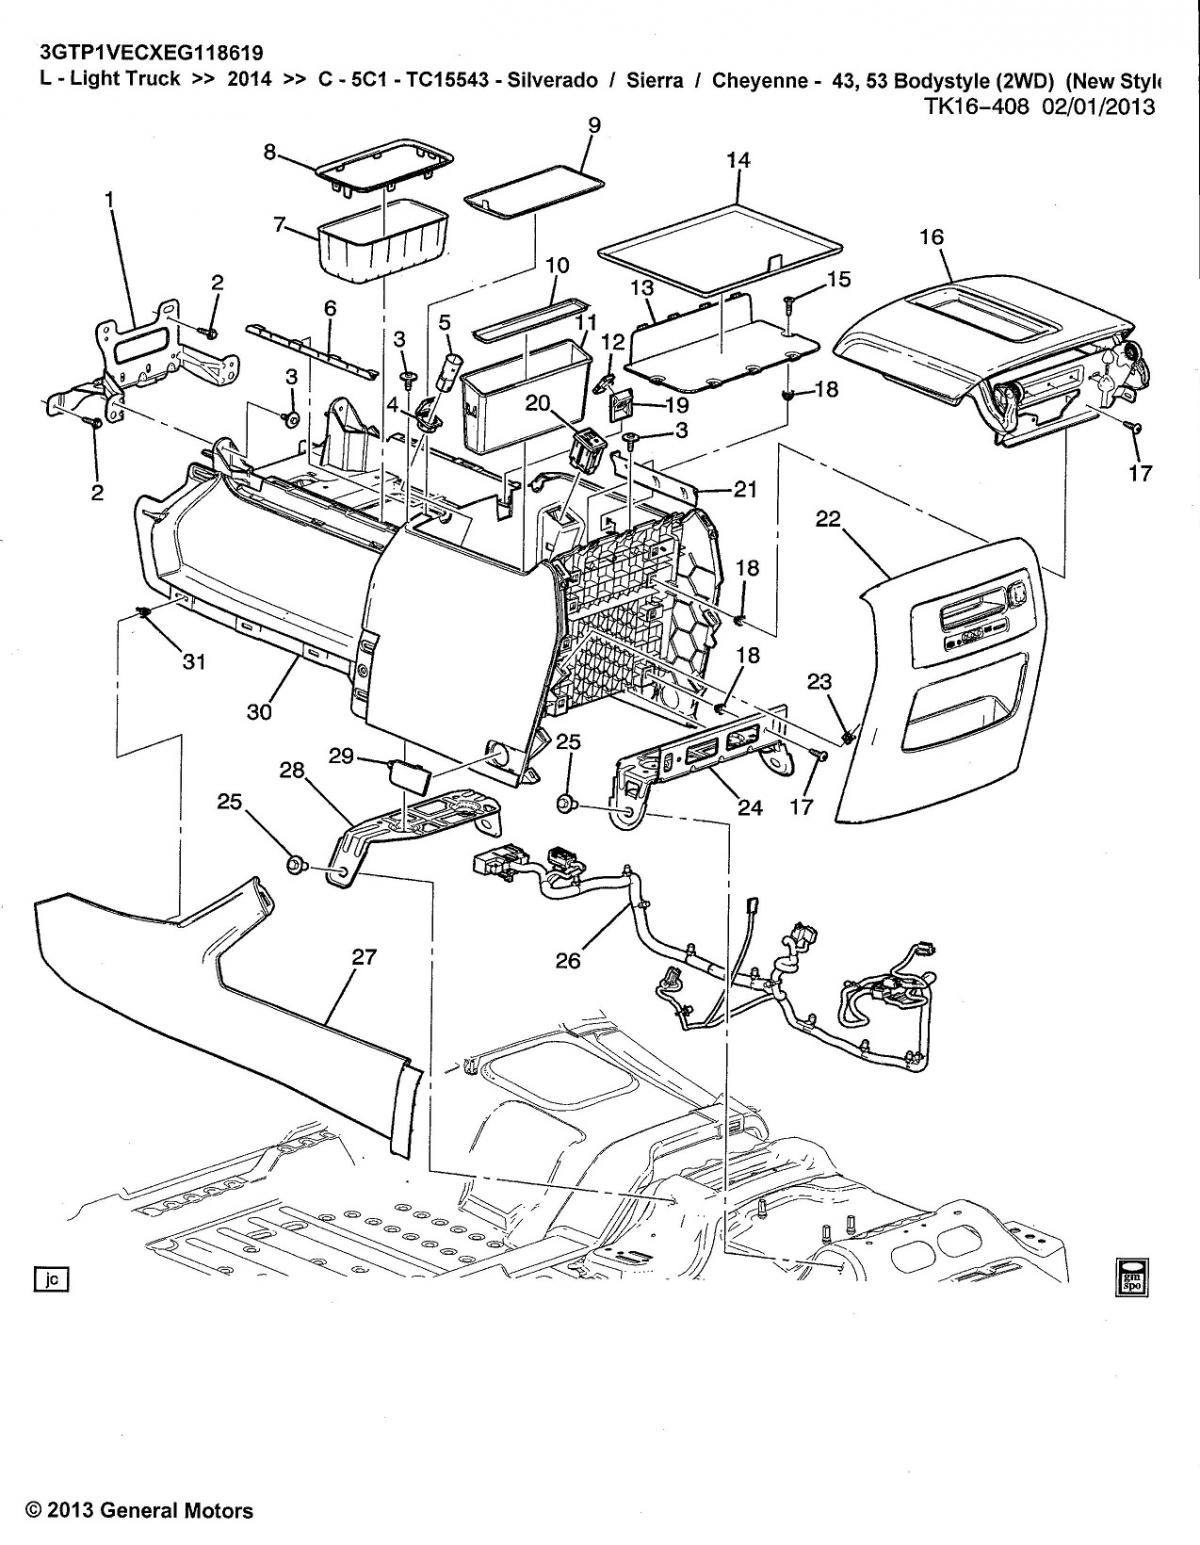 2009 Gmc Sierra Rear Suspension Parts Diagram. Fuse Box